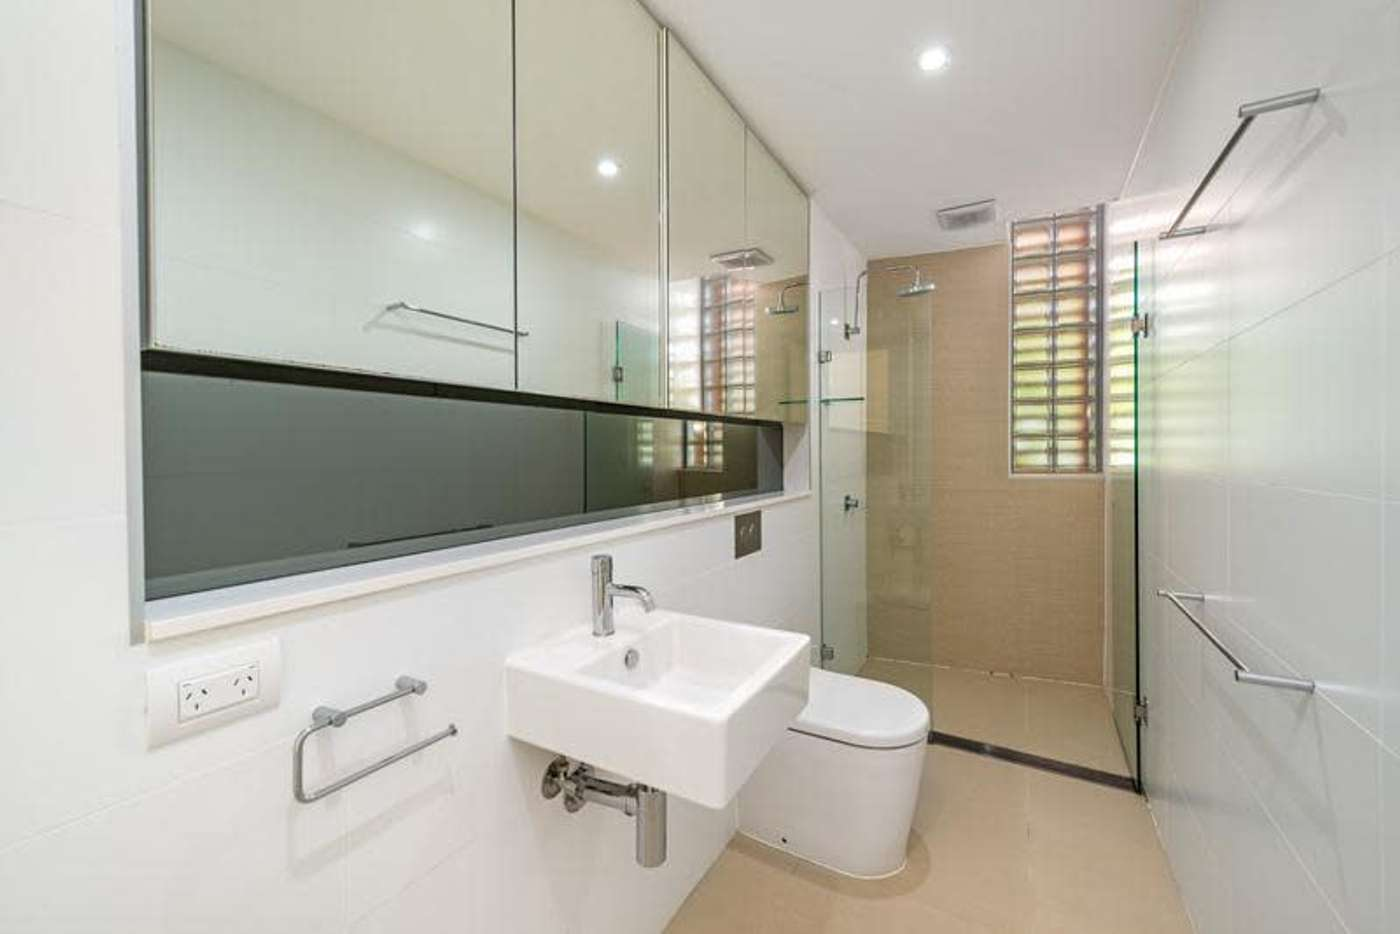 Main view of Homely apartment listing, 111/9-15 Ascot Street, Kensington NSW 2033